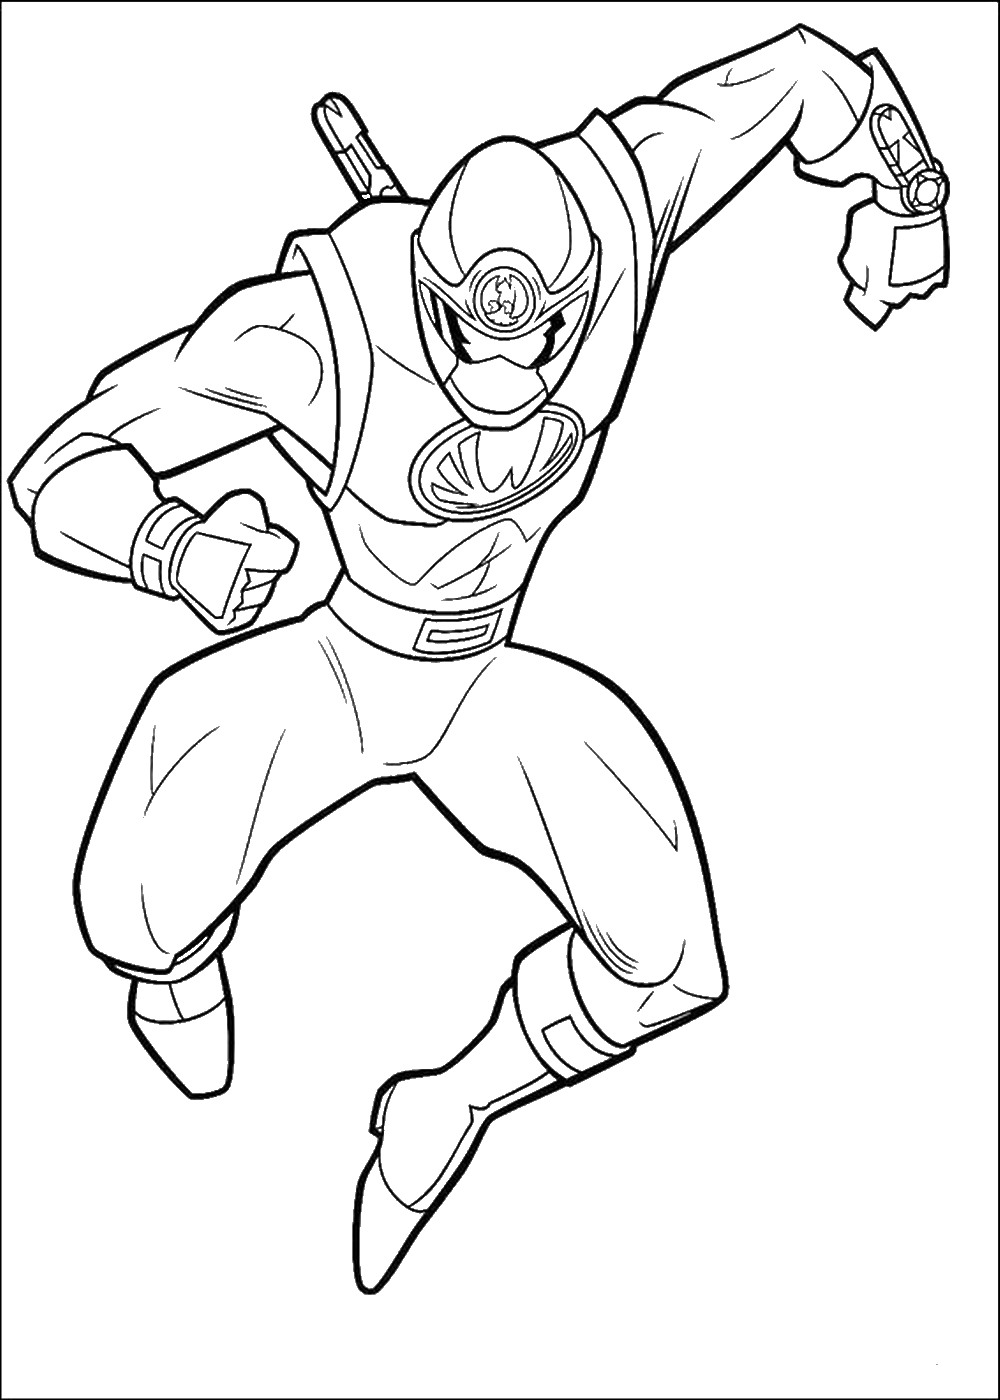 lego power rangers samurai coloring pages -